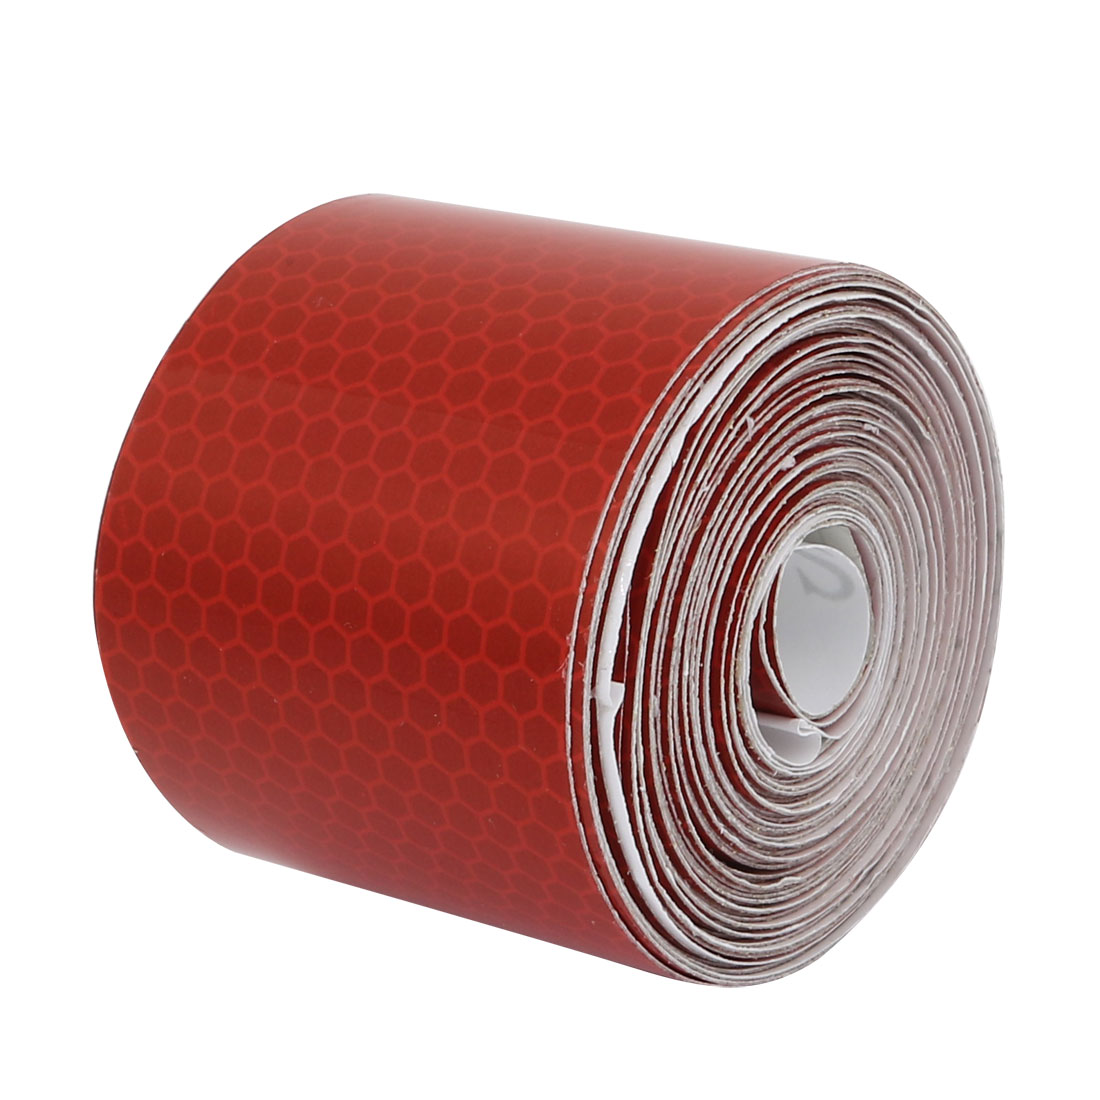 5cm Wide 6M Long Honeycomb Single Sided Adhesive Reflective Warning Tape Red